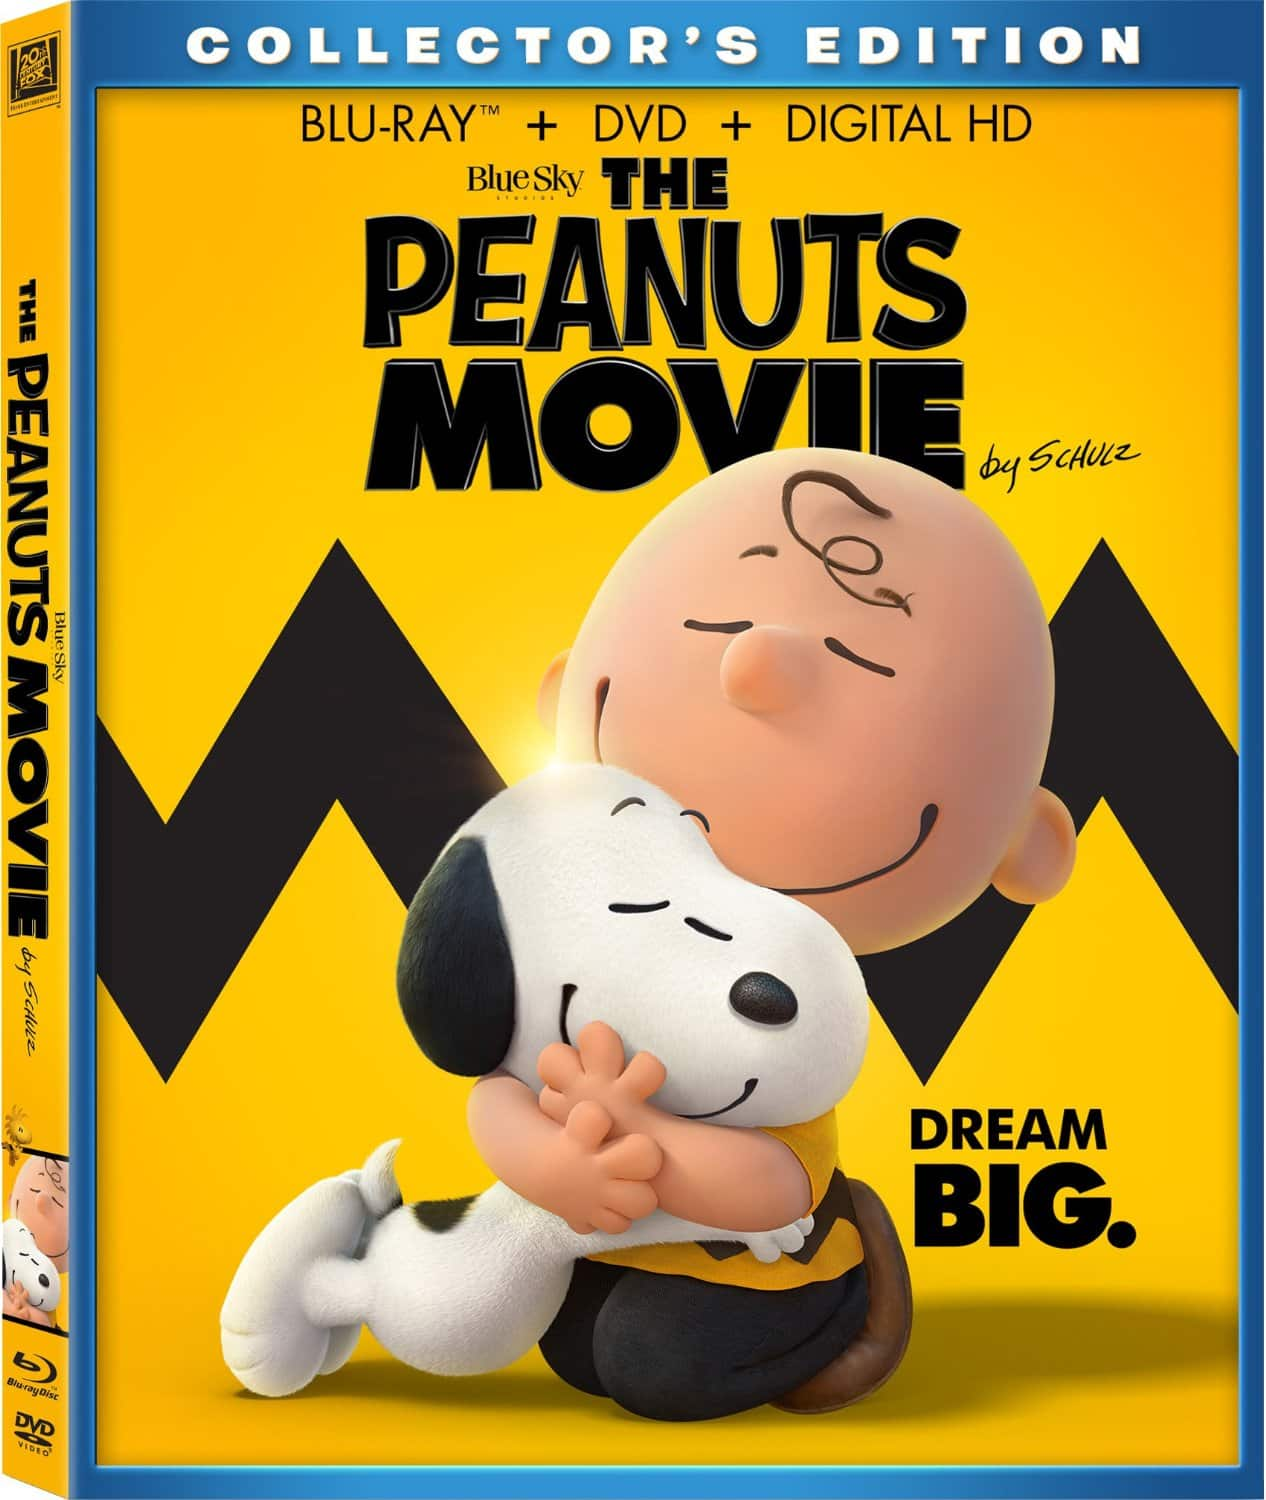 Amazon Prime Members: The Peanuts Movie (Blu-ray + DVD + Digital HD)  $12